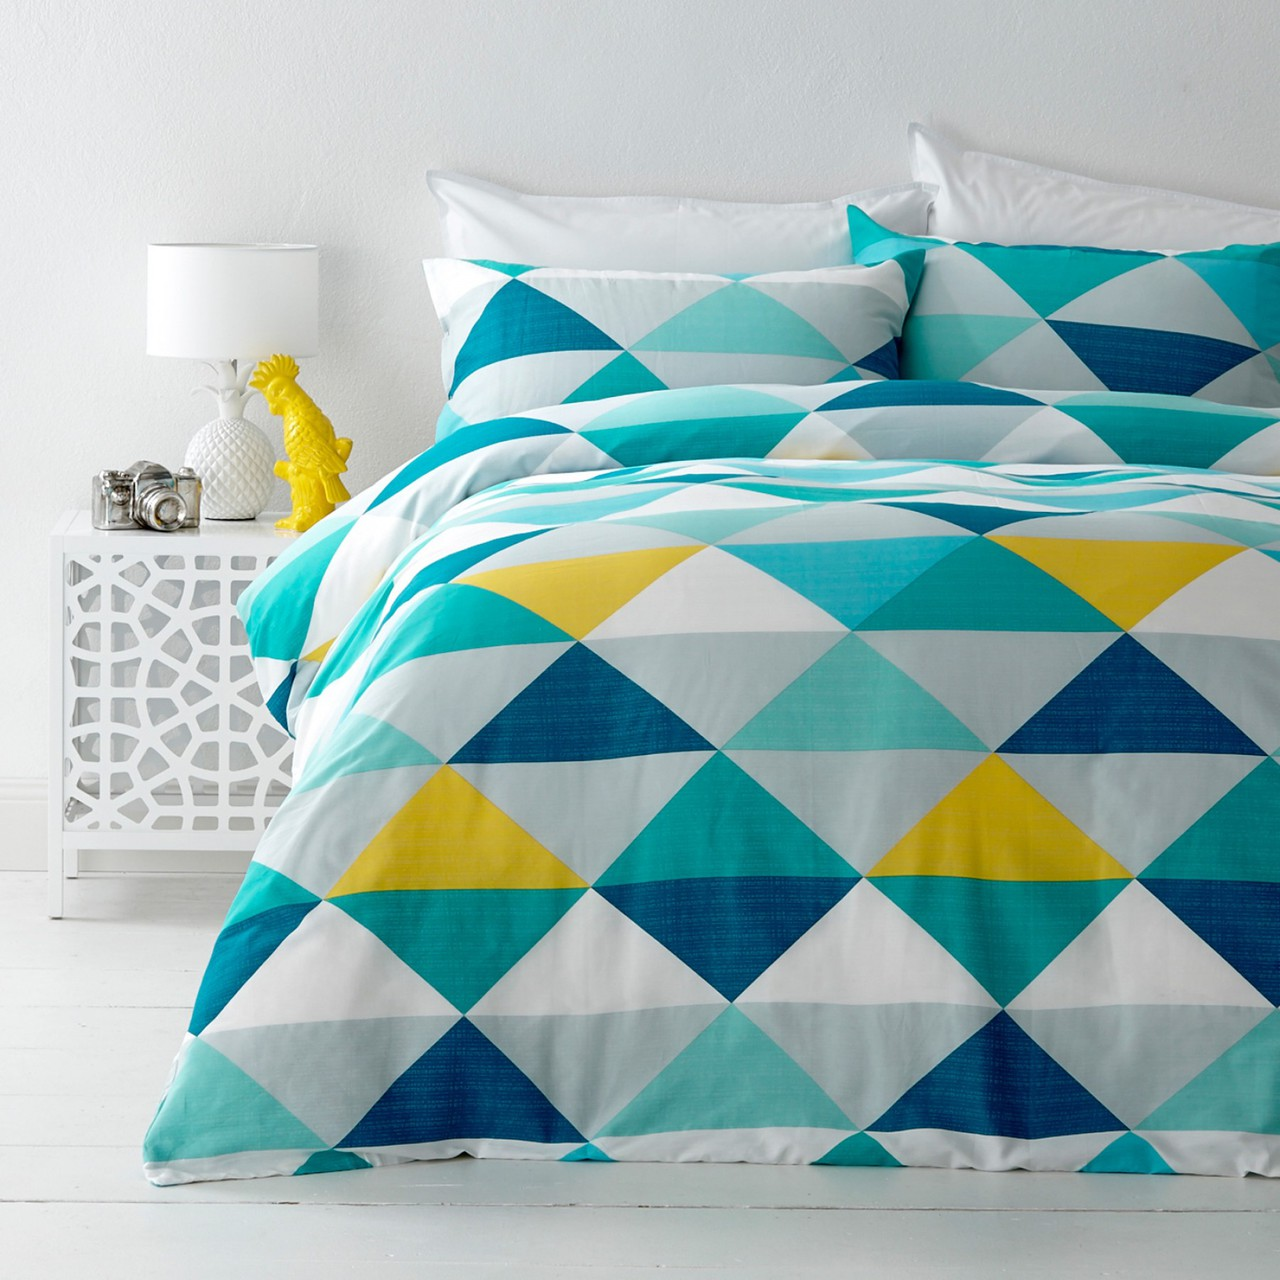 In 2 Linen Tanika Yellow Double Bed Quilt Cover Set - In 2 Linen : double bed quilt - Adamdwight.com